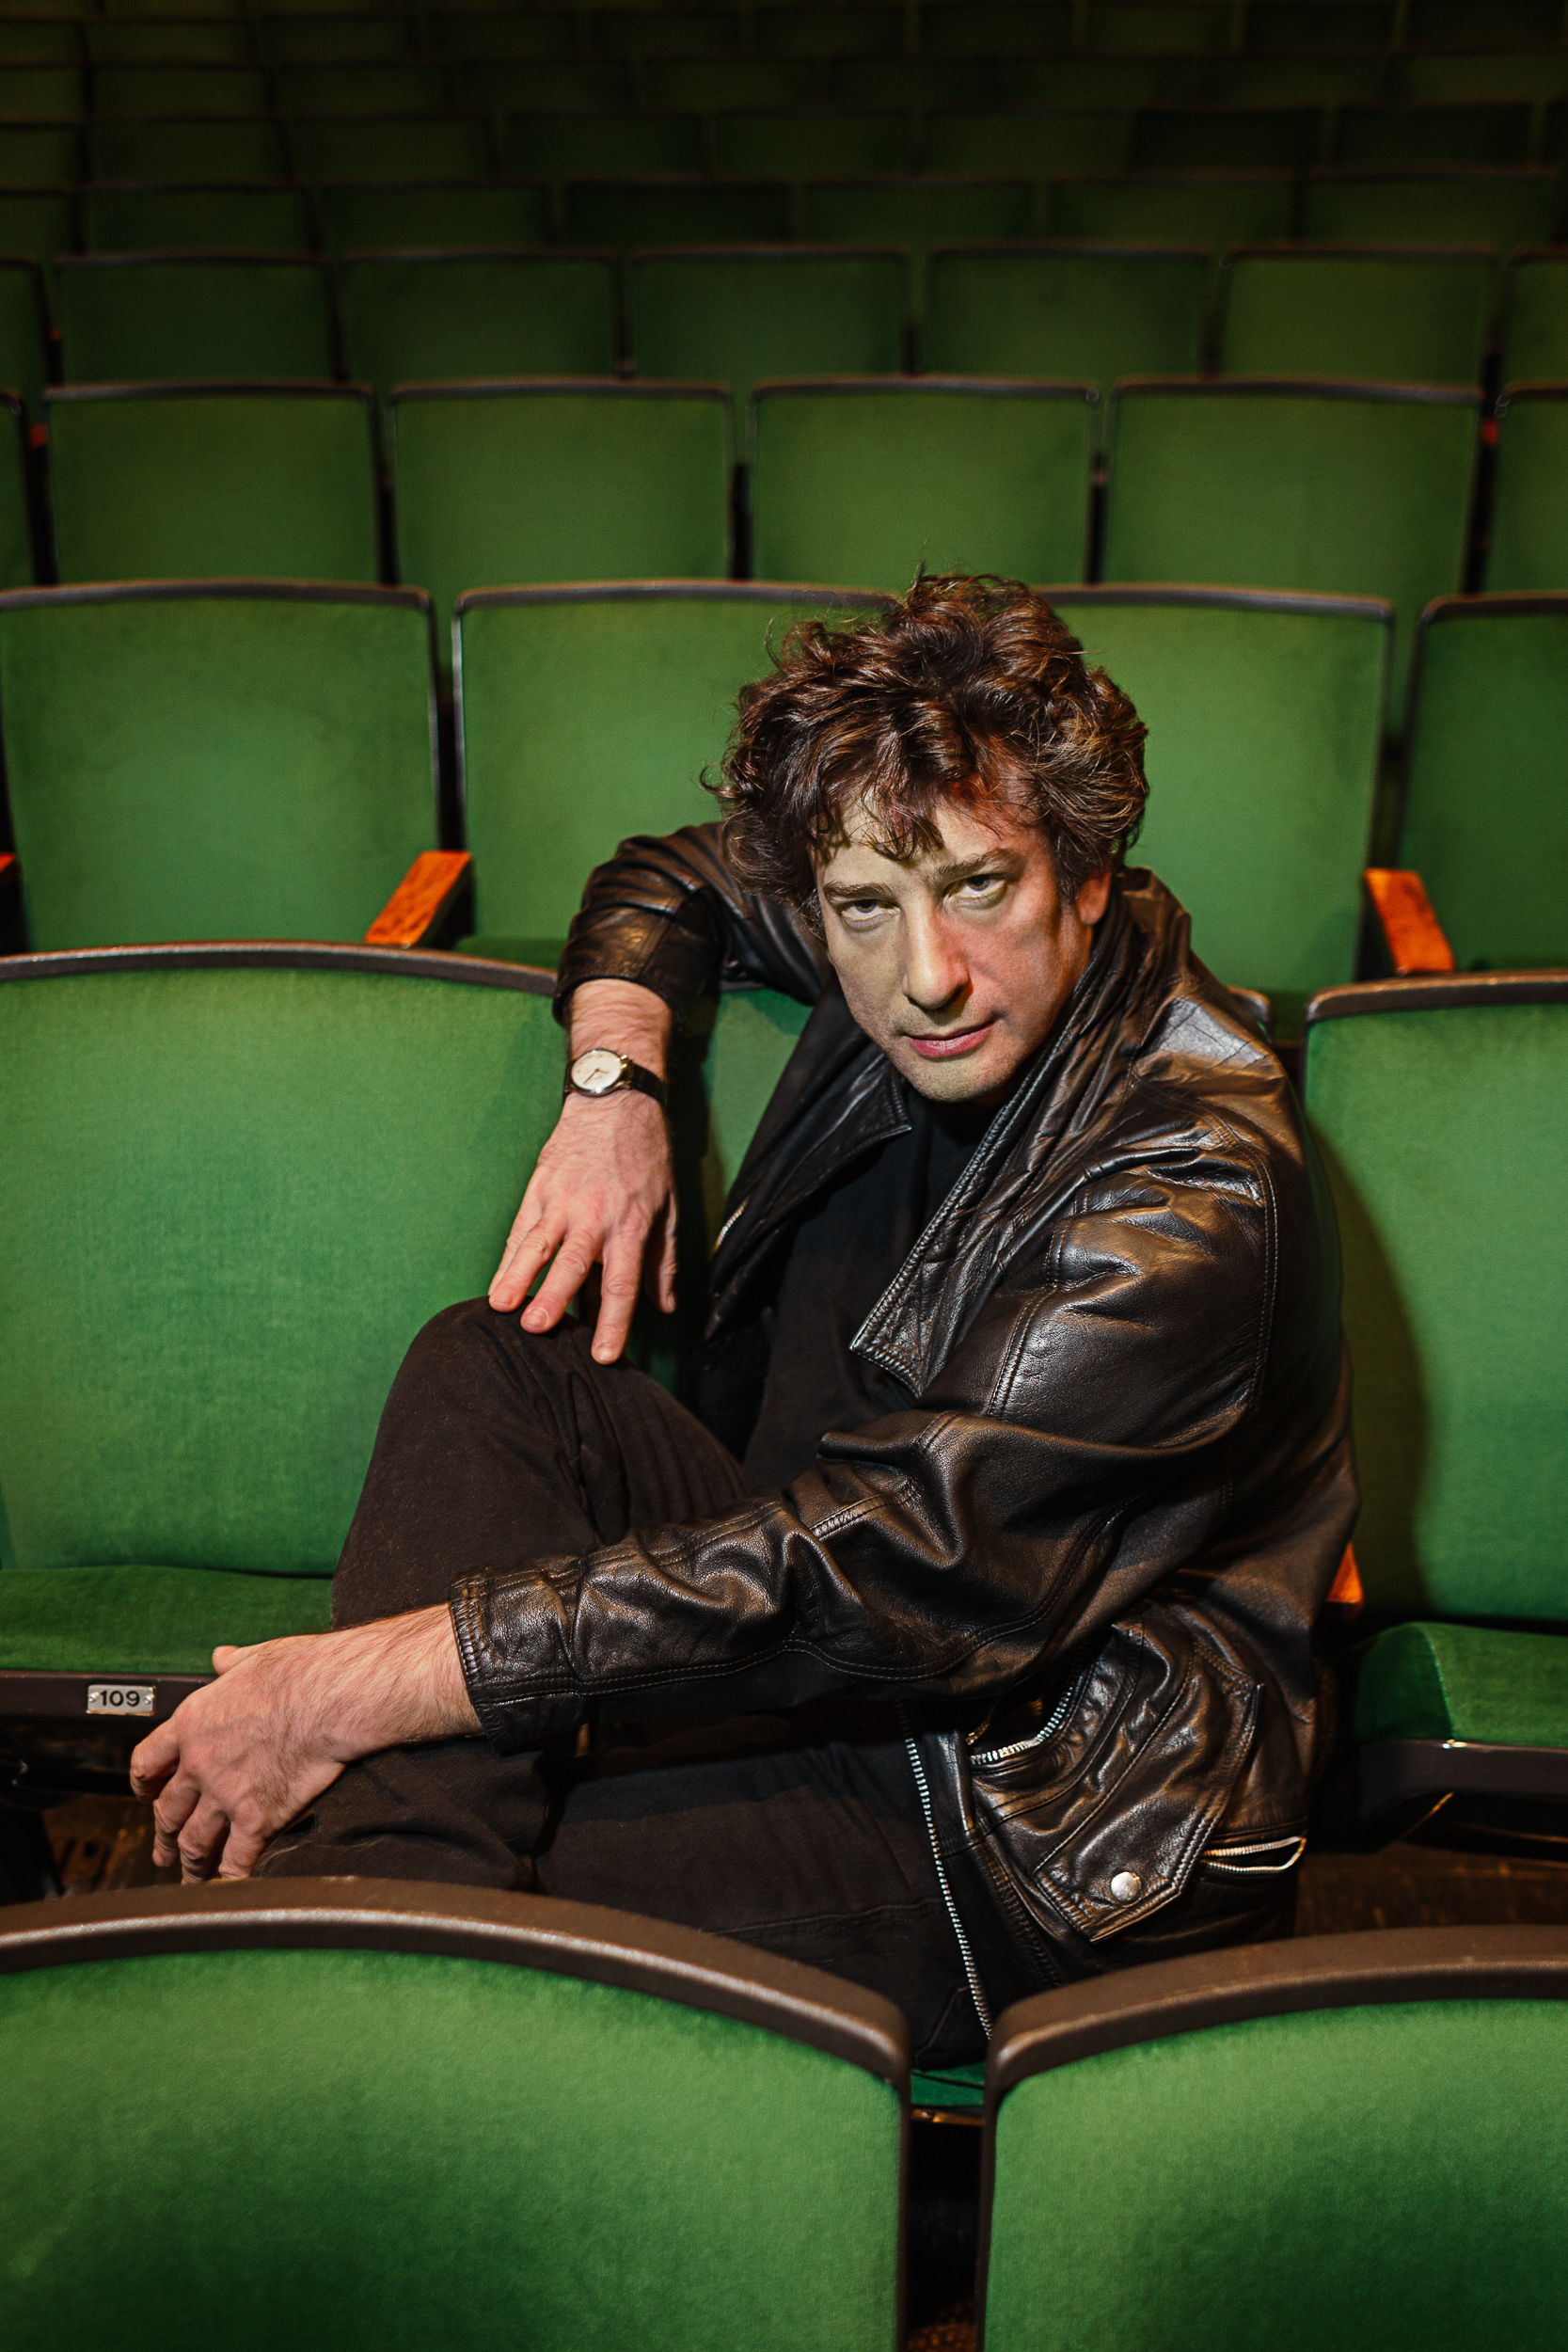 Neil Gaiman - Author